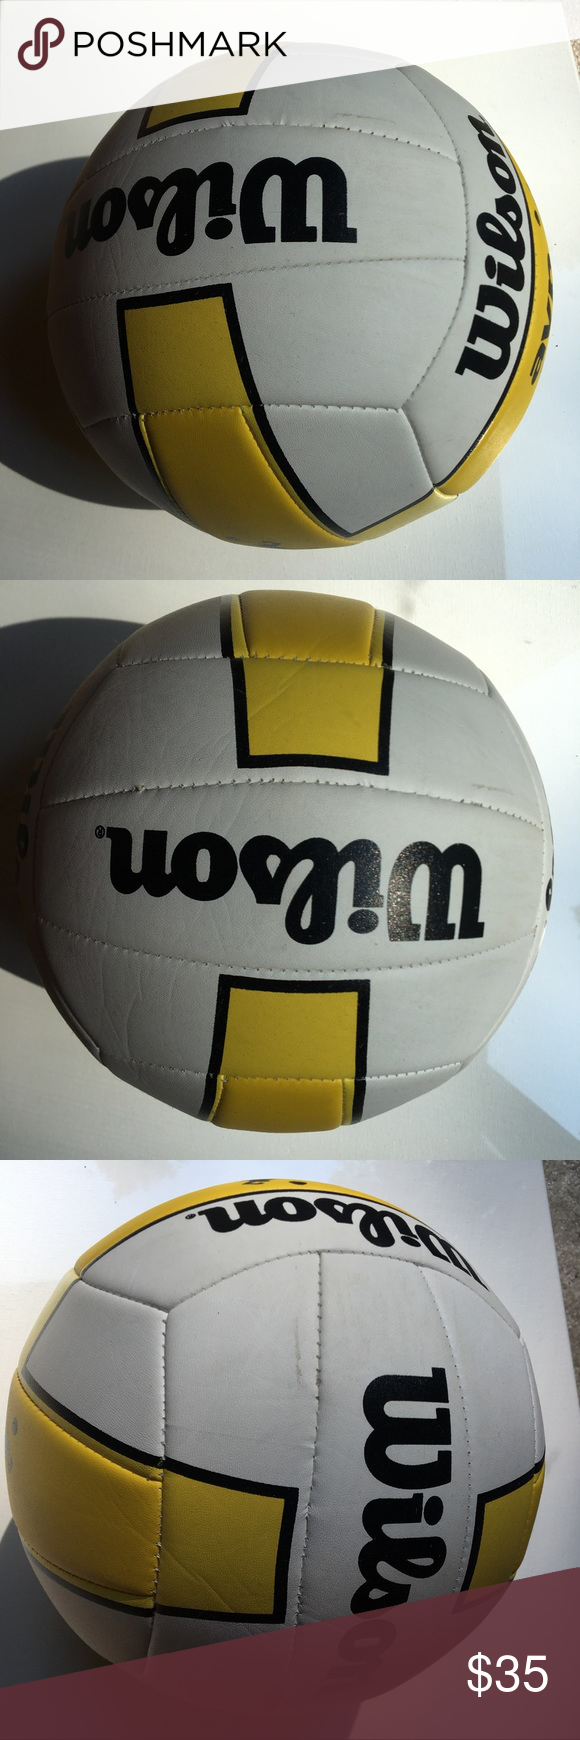 Wilson Volleyball Wilson Volleyball Volleyball Really Cool Stuff